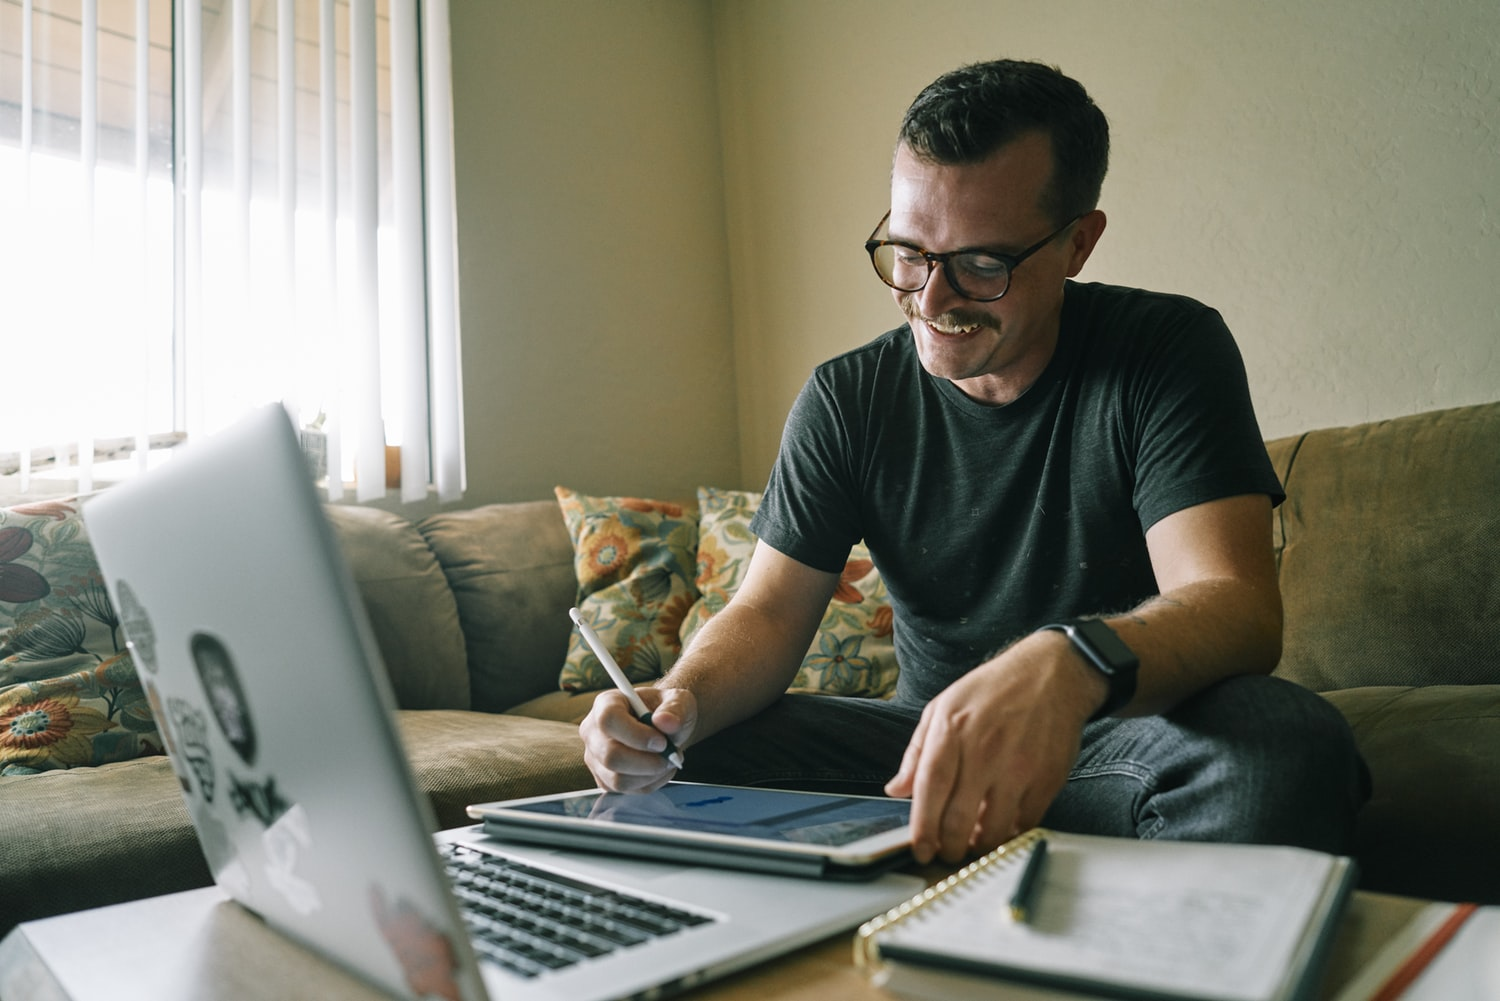 A man smiling and writing.  He is working from home on his couch, with a laptop in the foreground.